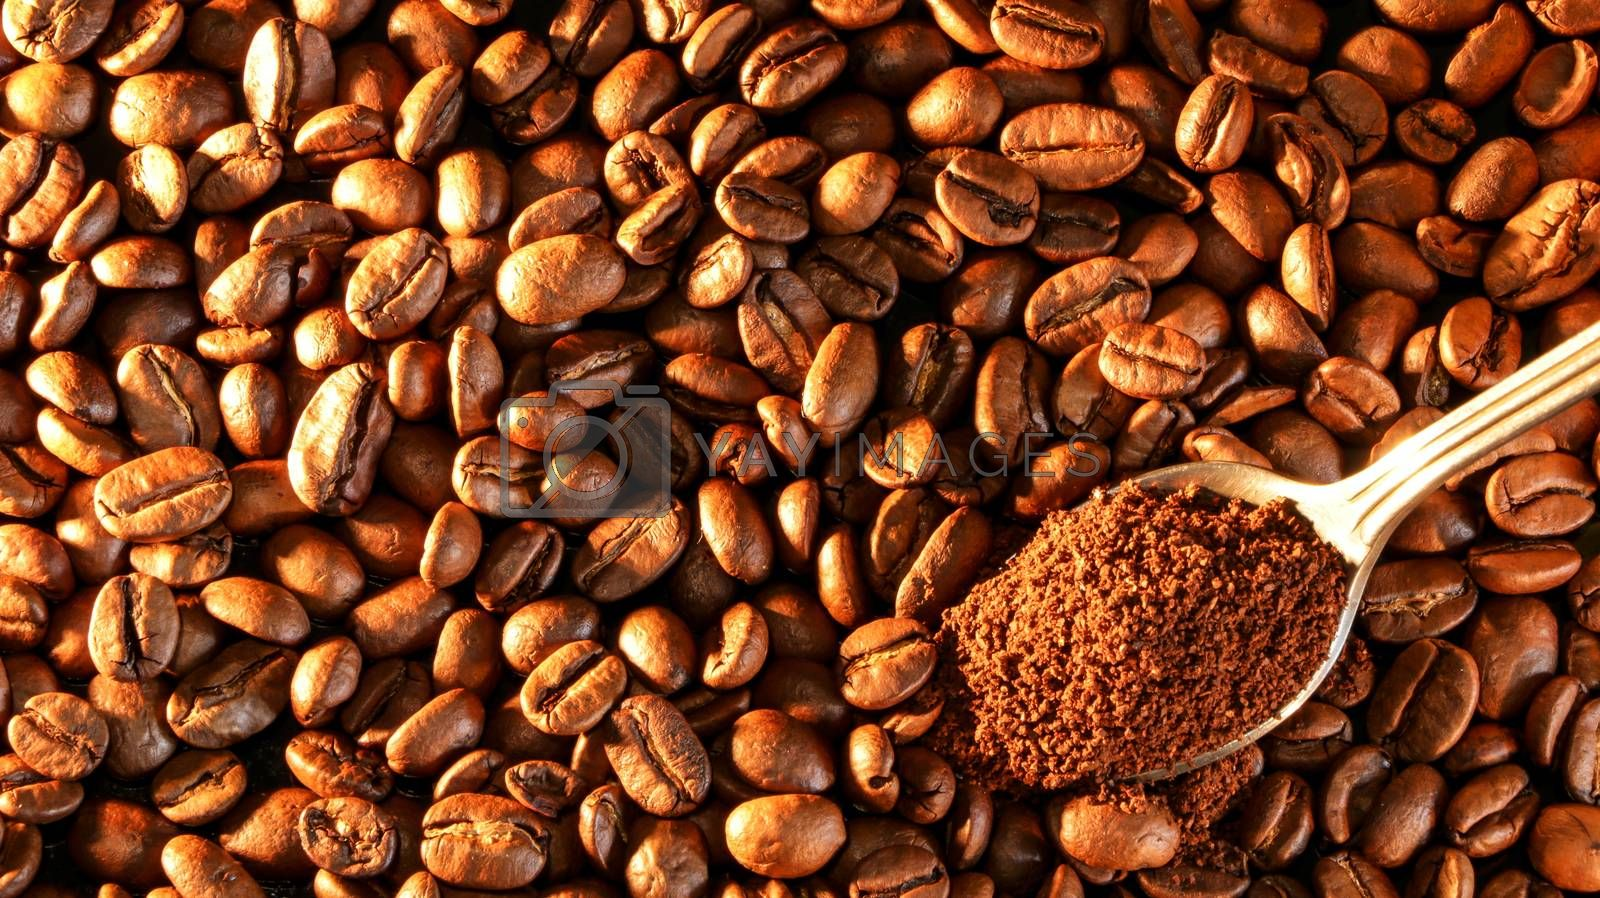 Coffee beans close-up with a spoon of ground coffee.